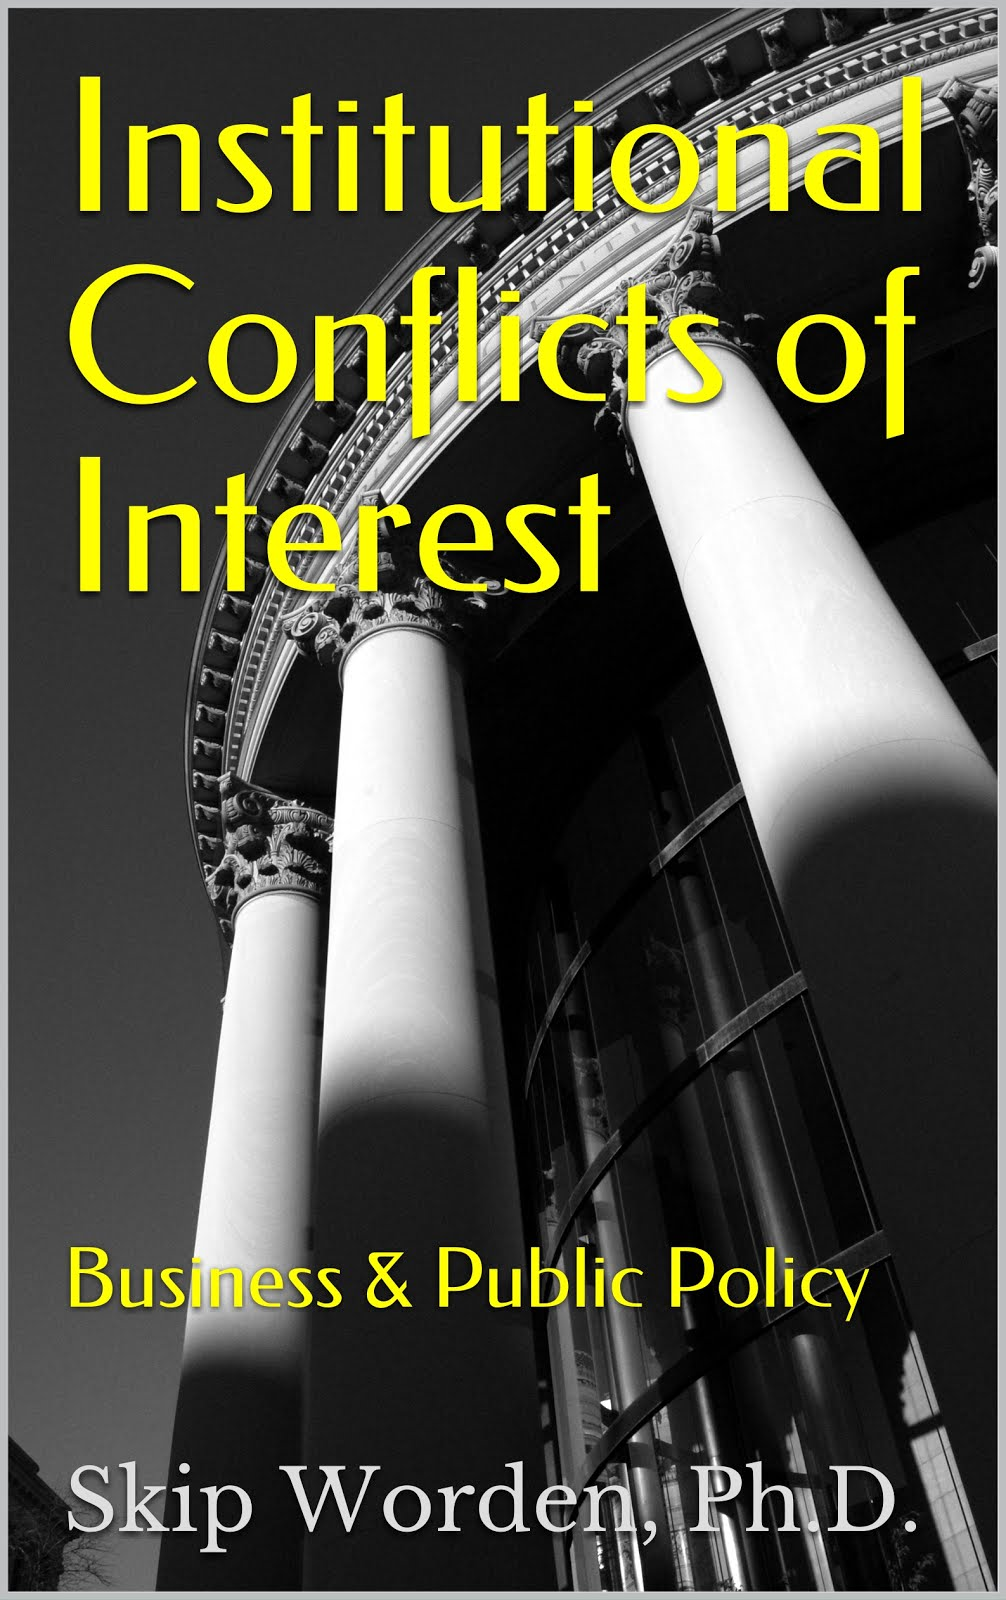 Institutional Conflicts of Interest: Business & Public Policy